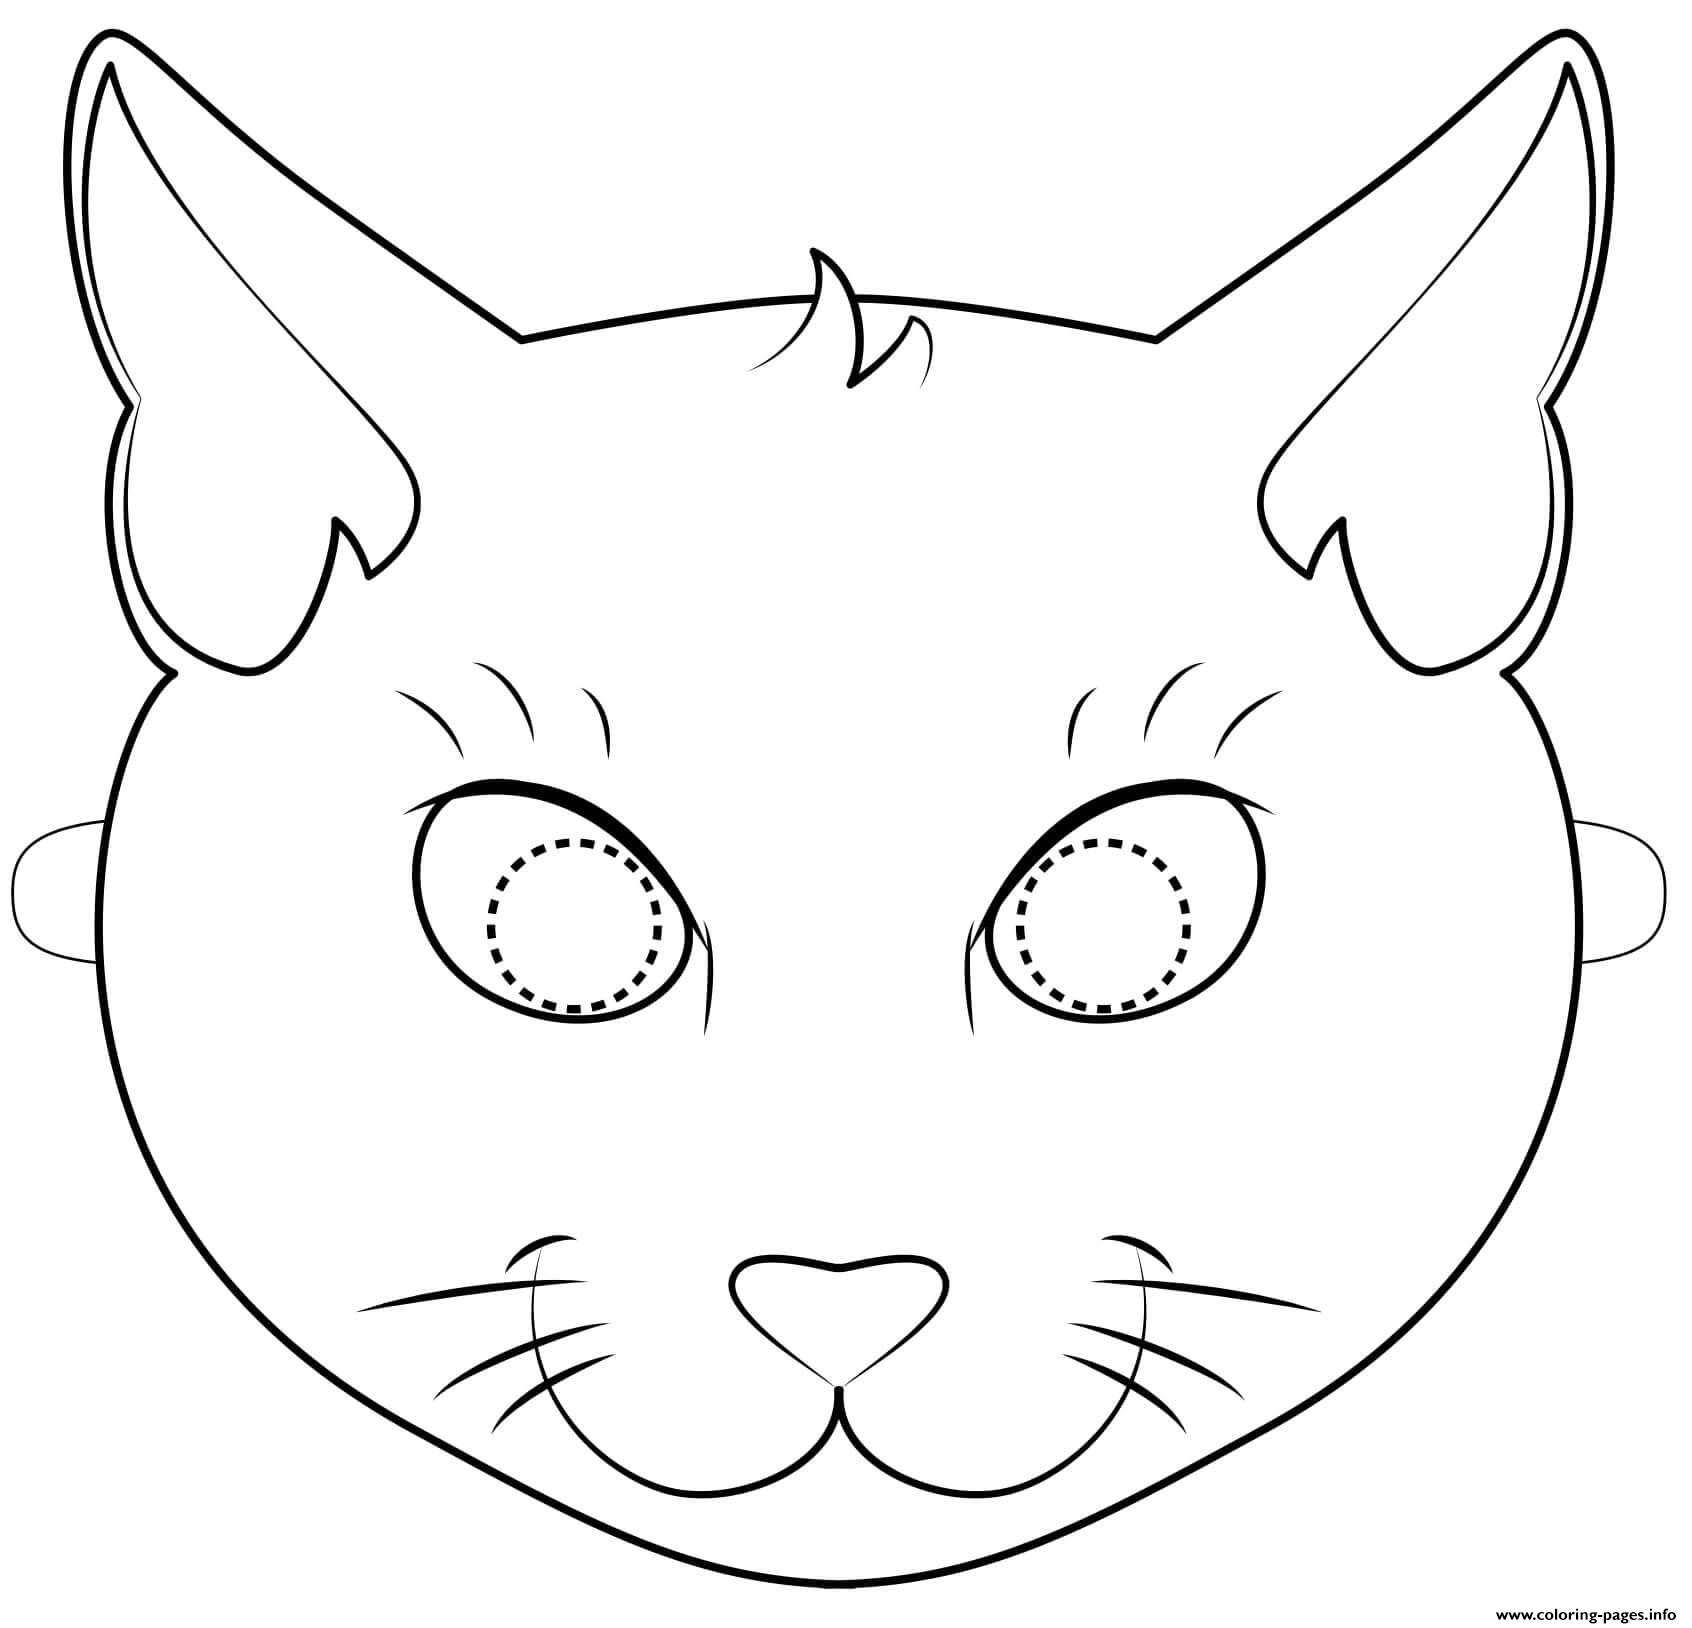 Free Printable Halloween Coloring Pages For Kids | 1628x1692